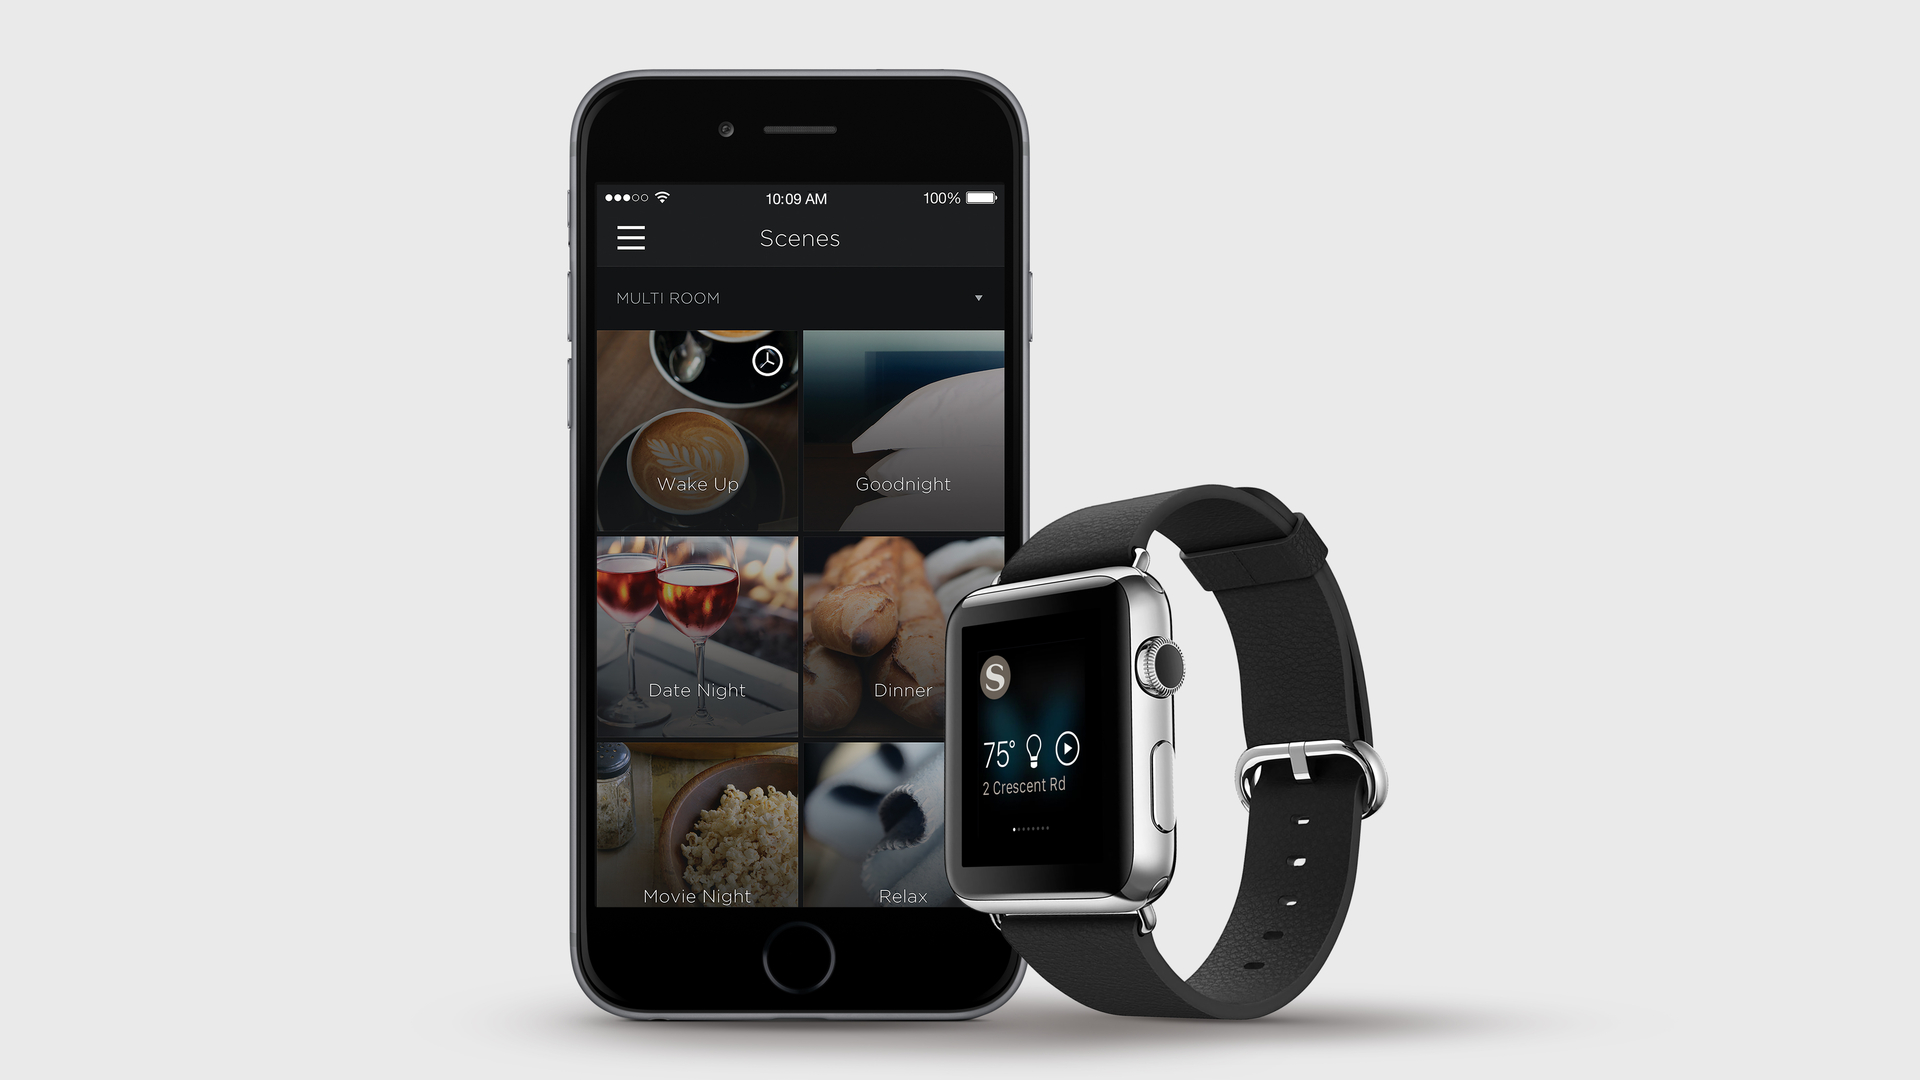 Apple Watch now features the Savant App, allowing control of your smart home via your smart watch.